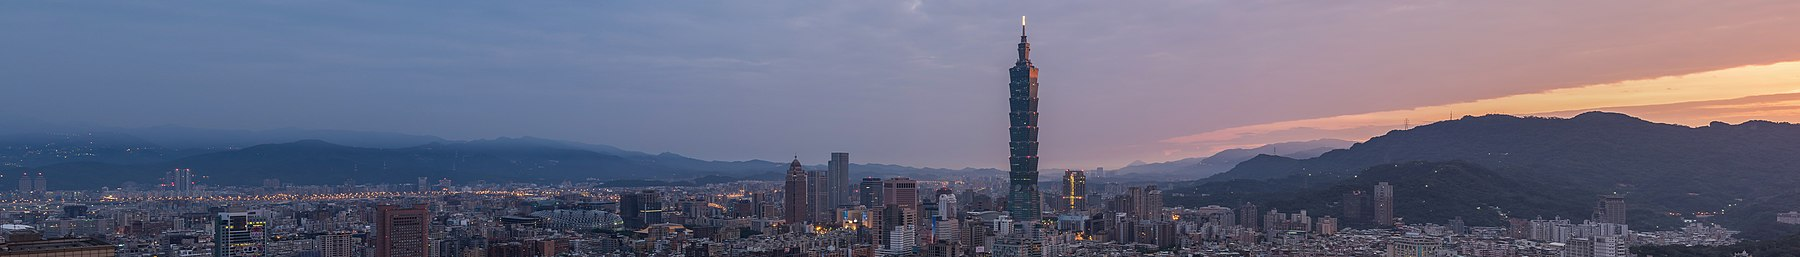 Taipei - East District banner.jpg